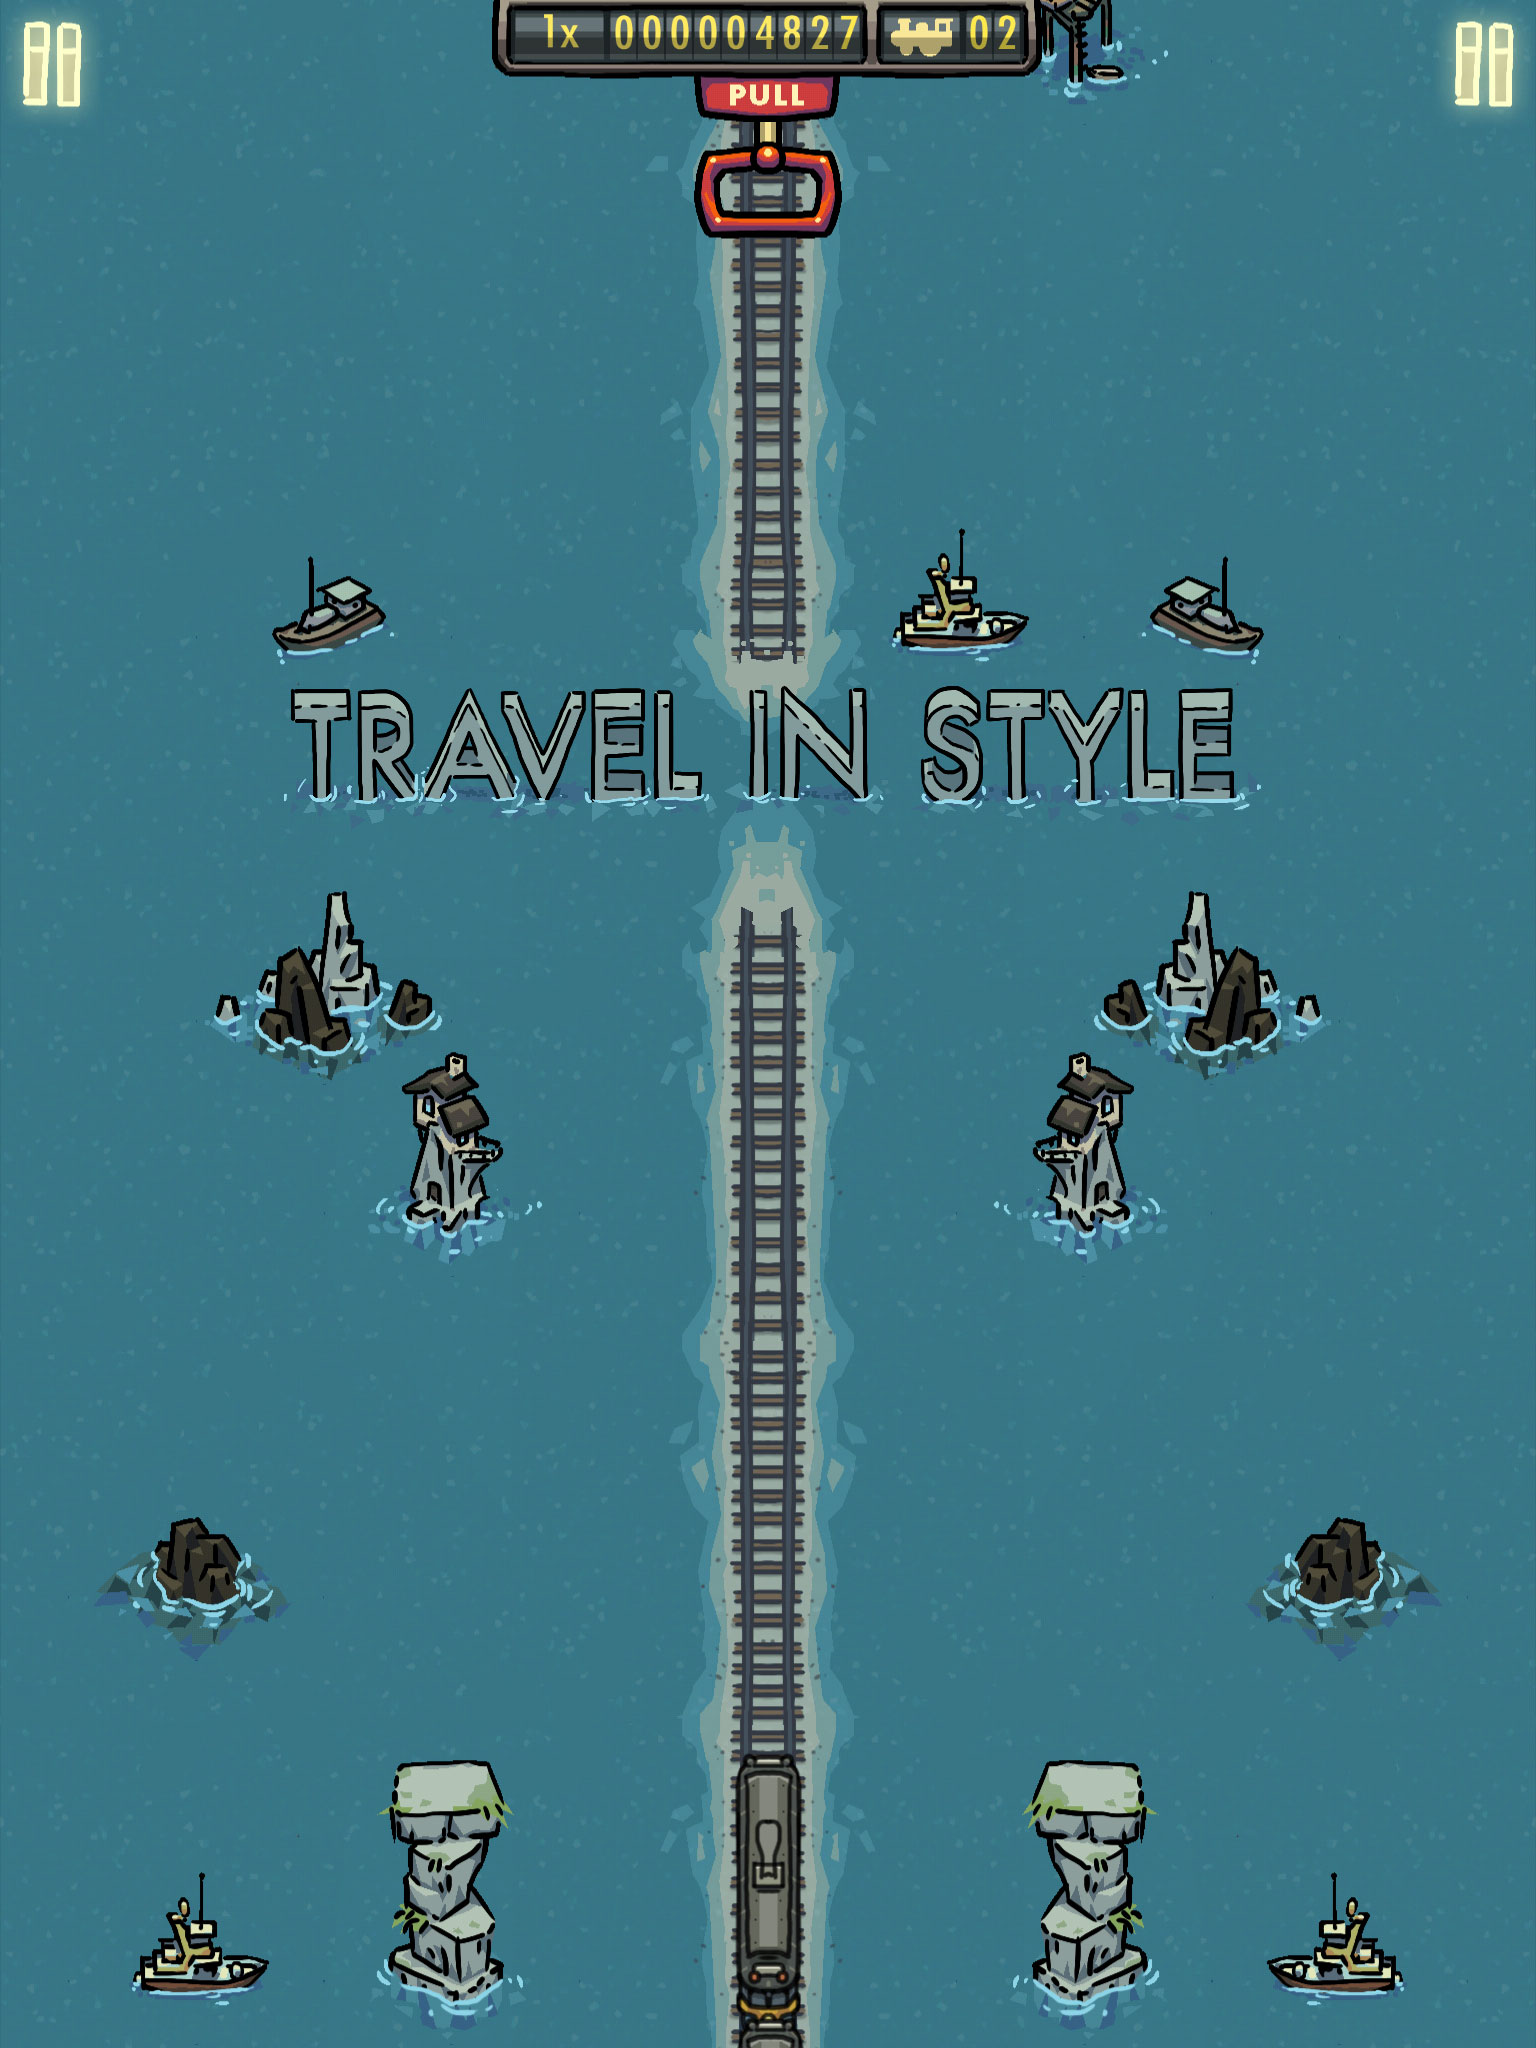 Symmetrain - Travel in Style